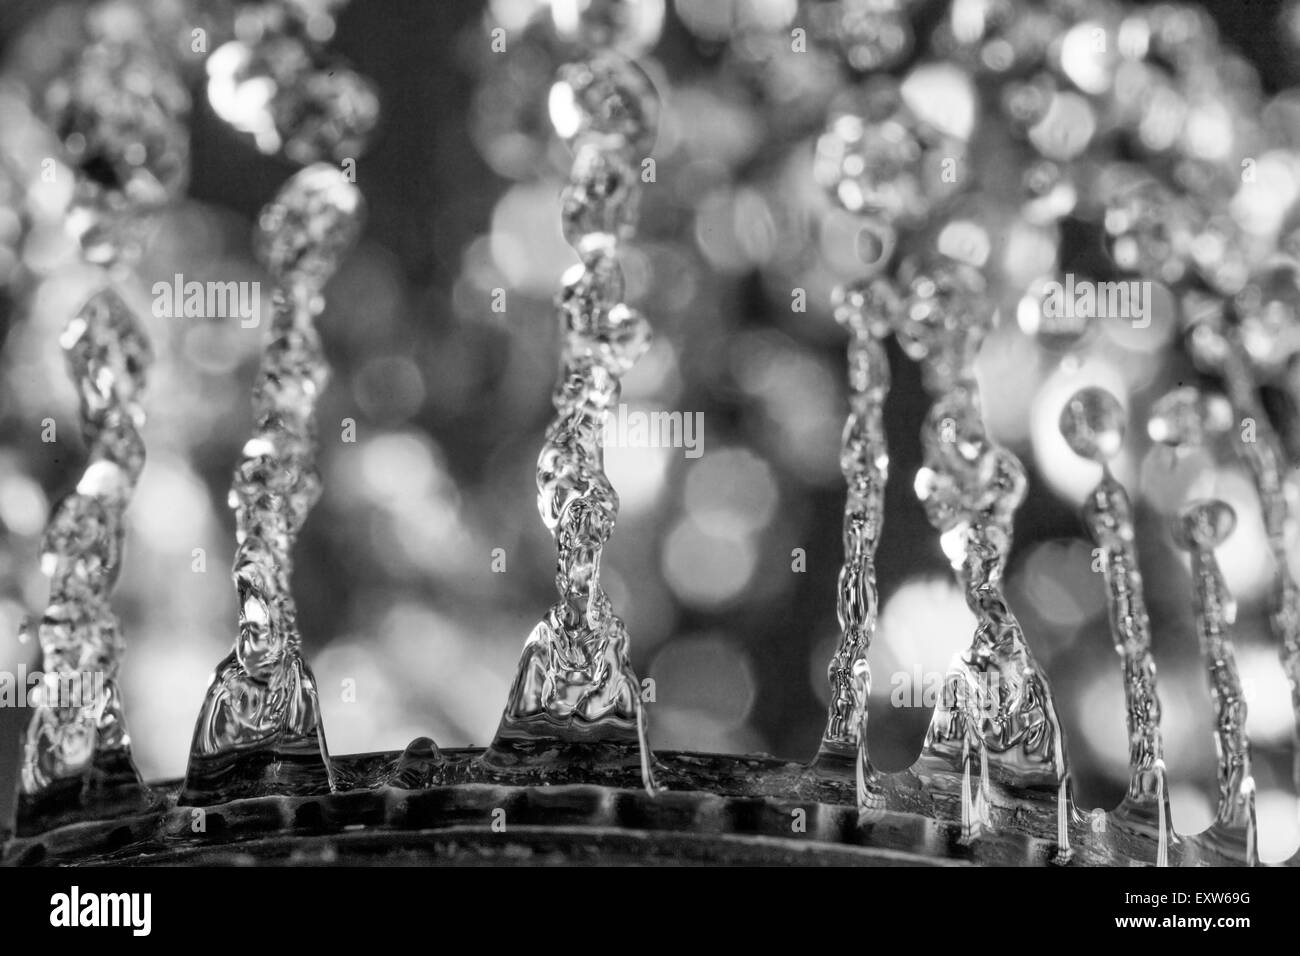 Water drops and blurred background macro shot - Stock Image